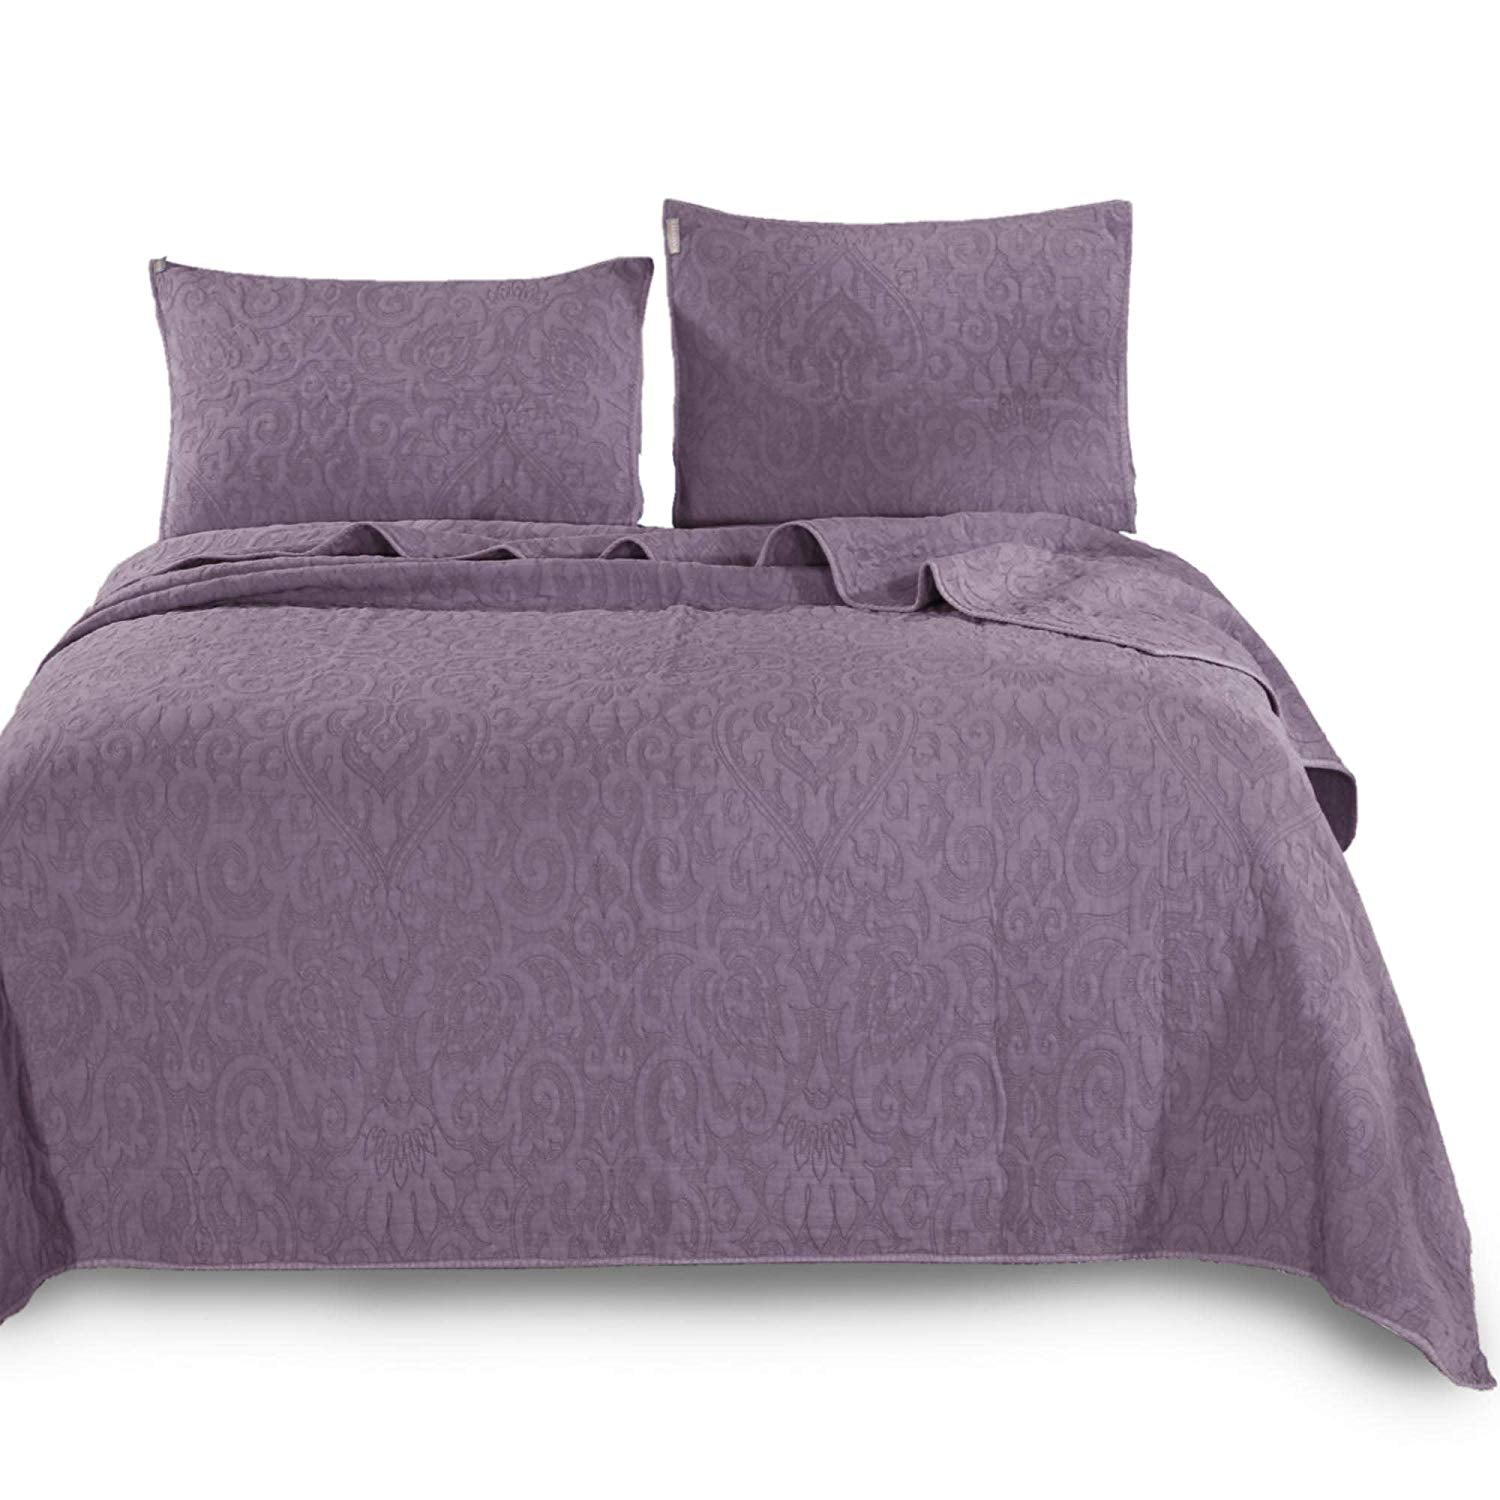 Kasentex Ultra Soft Stone-Washed Bedspread Set, 100% Premium Natural Cotton with Stitched Floral Pattern - Quilt + 2 Shams